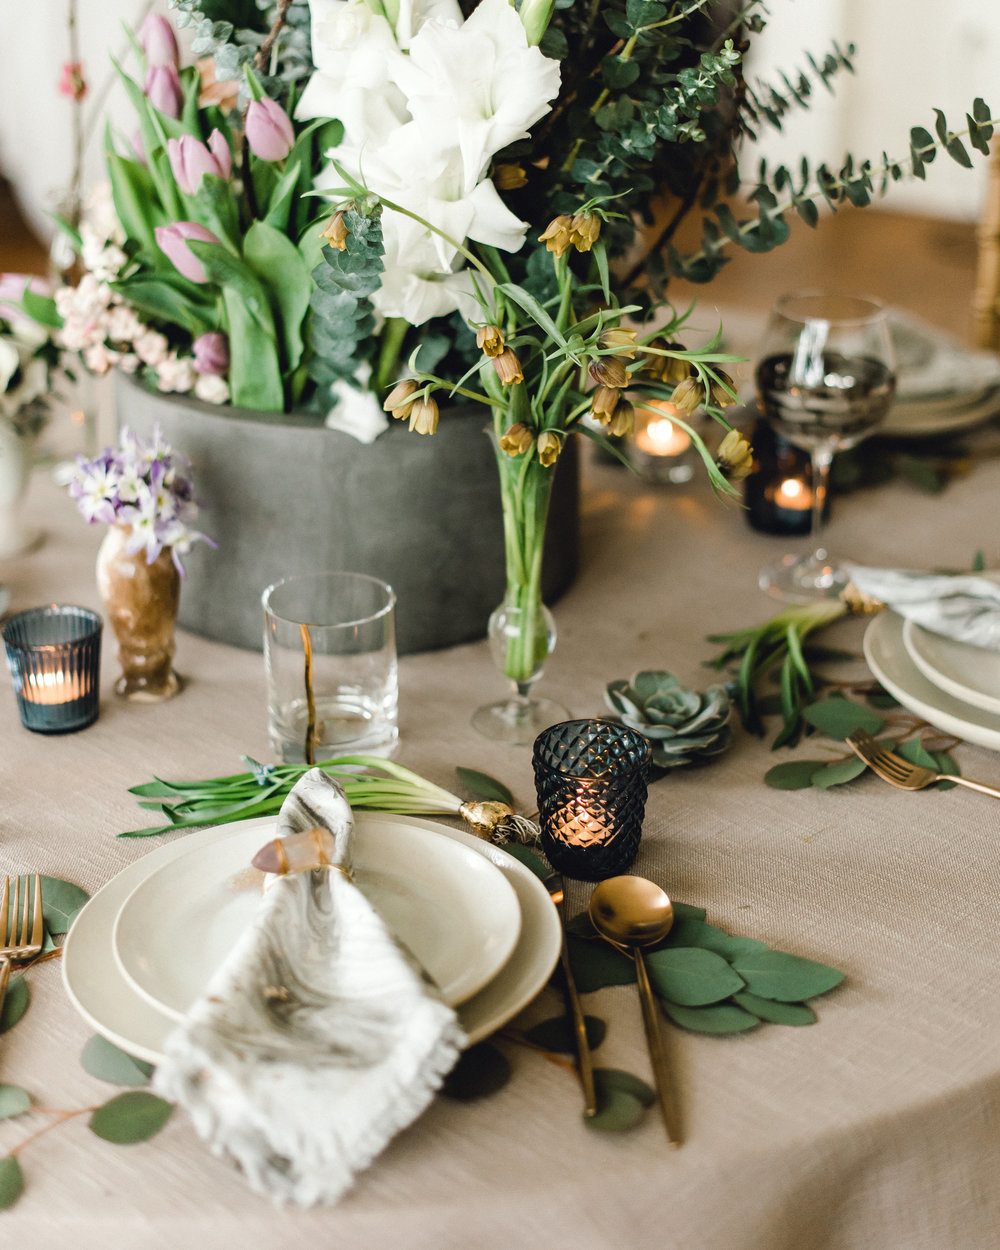 Wedding table setting and table decor for Pablo Neruda enchanting garden styled shoot planned by Exhale Events. Get inspired at exhale-events.com!